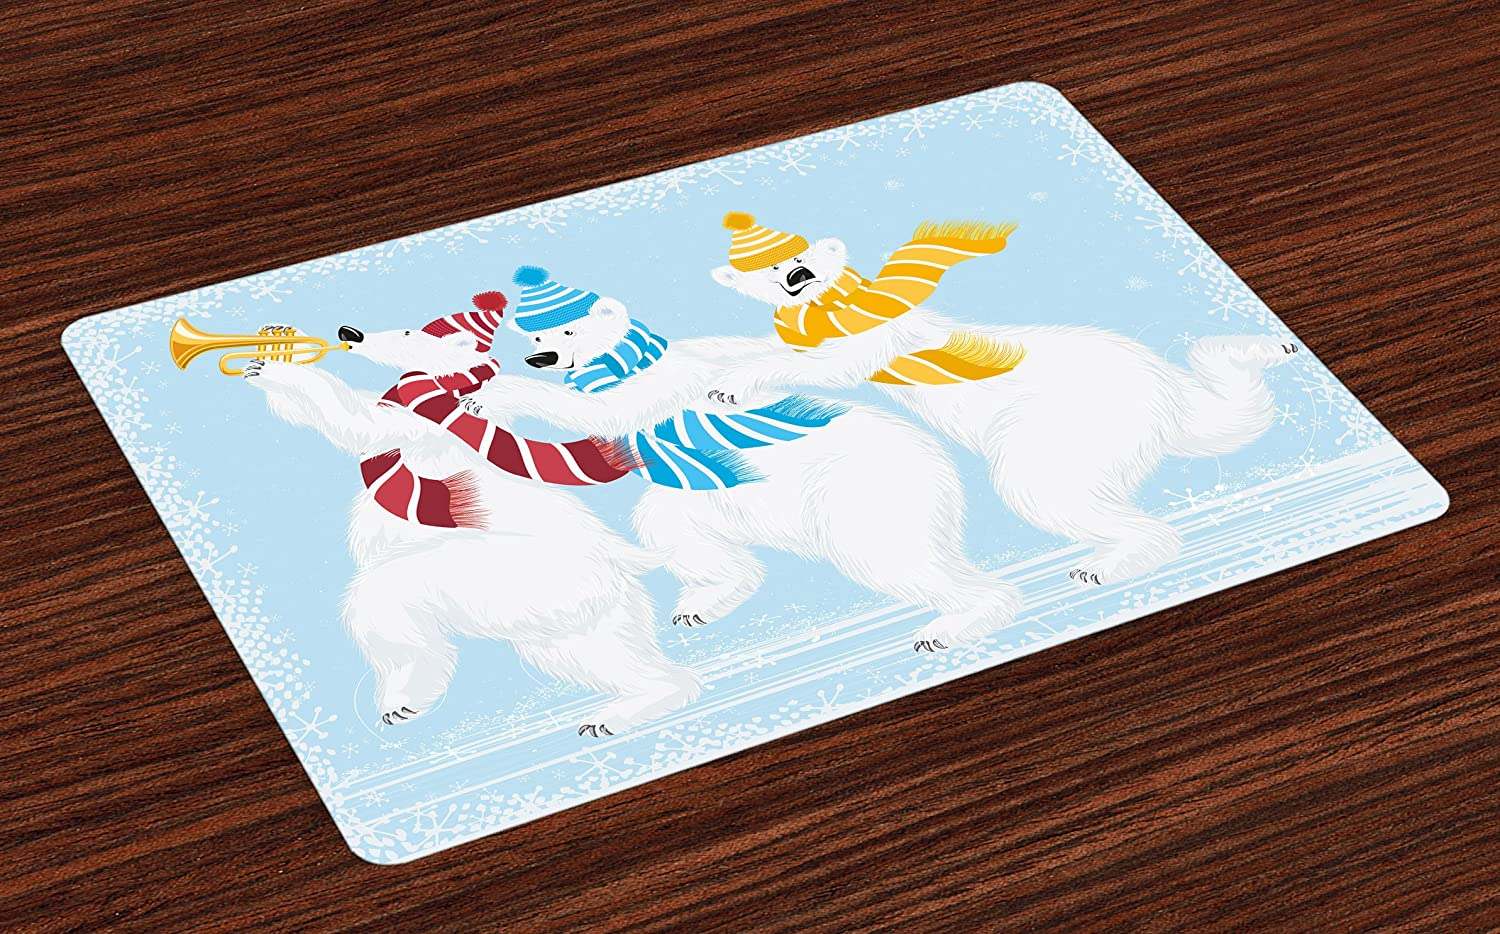 Ambesonne Bear Place Mats Set of 4, Christmas Time at North Pole Theme 3 Funny Characters with Scarves and Trumpet, Washable Fabric Placemats for Dining Room Kitchen Table Decor, Yellow Blue